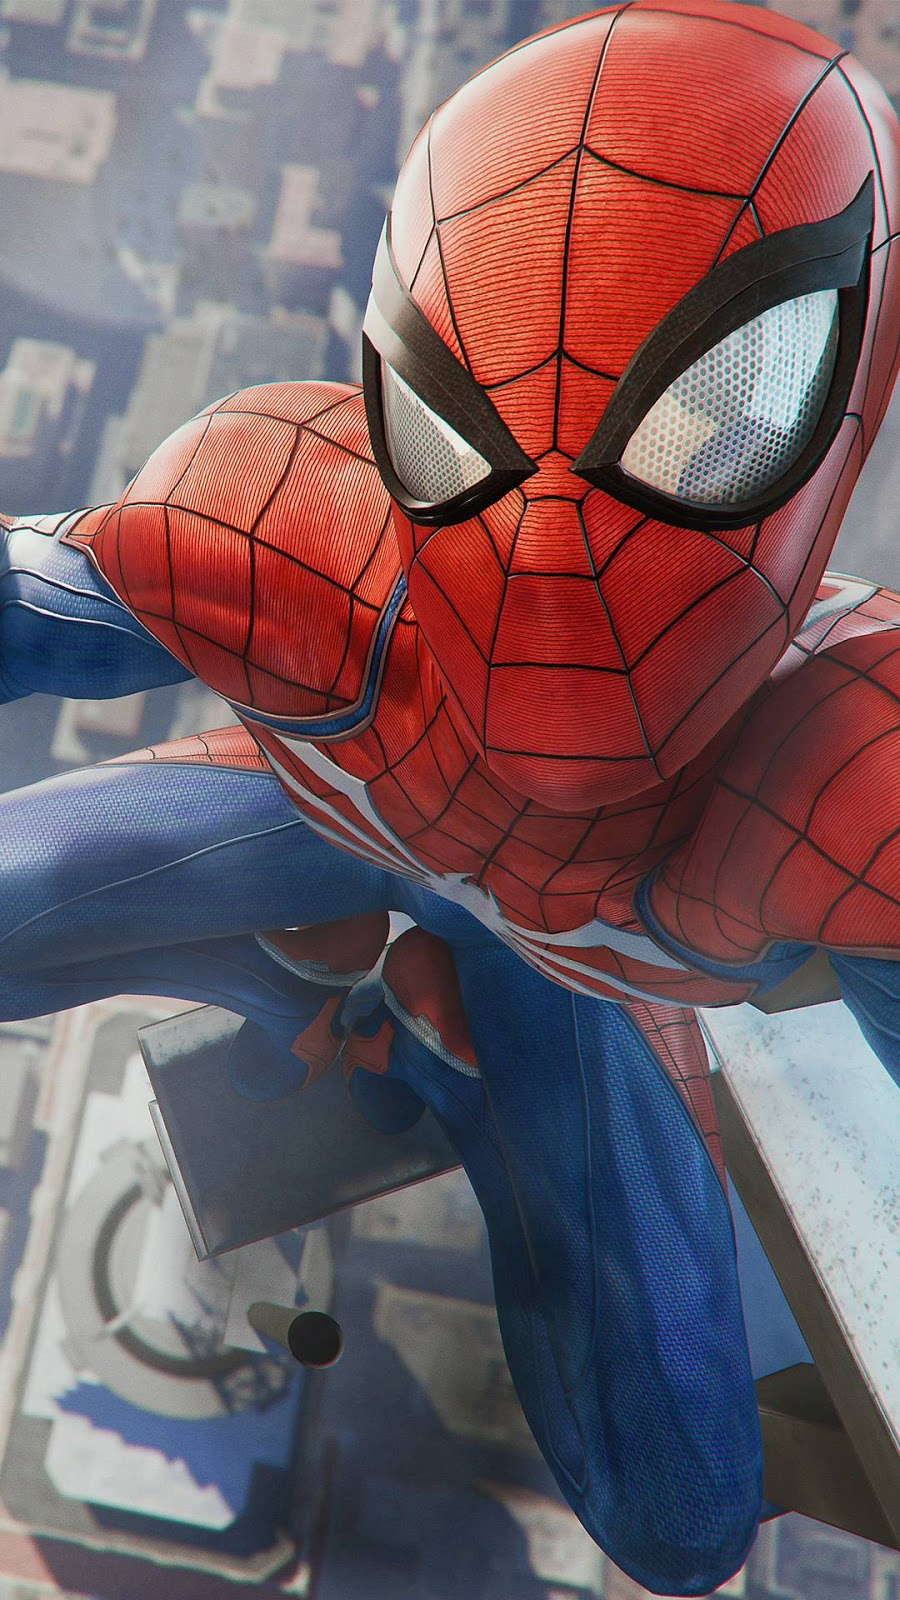 Spider Man Ps4 Selfie 900x1600 Download Hd Wallpaper Wallpapertip